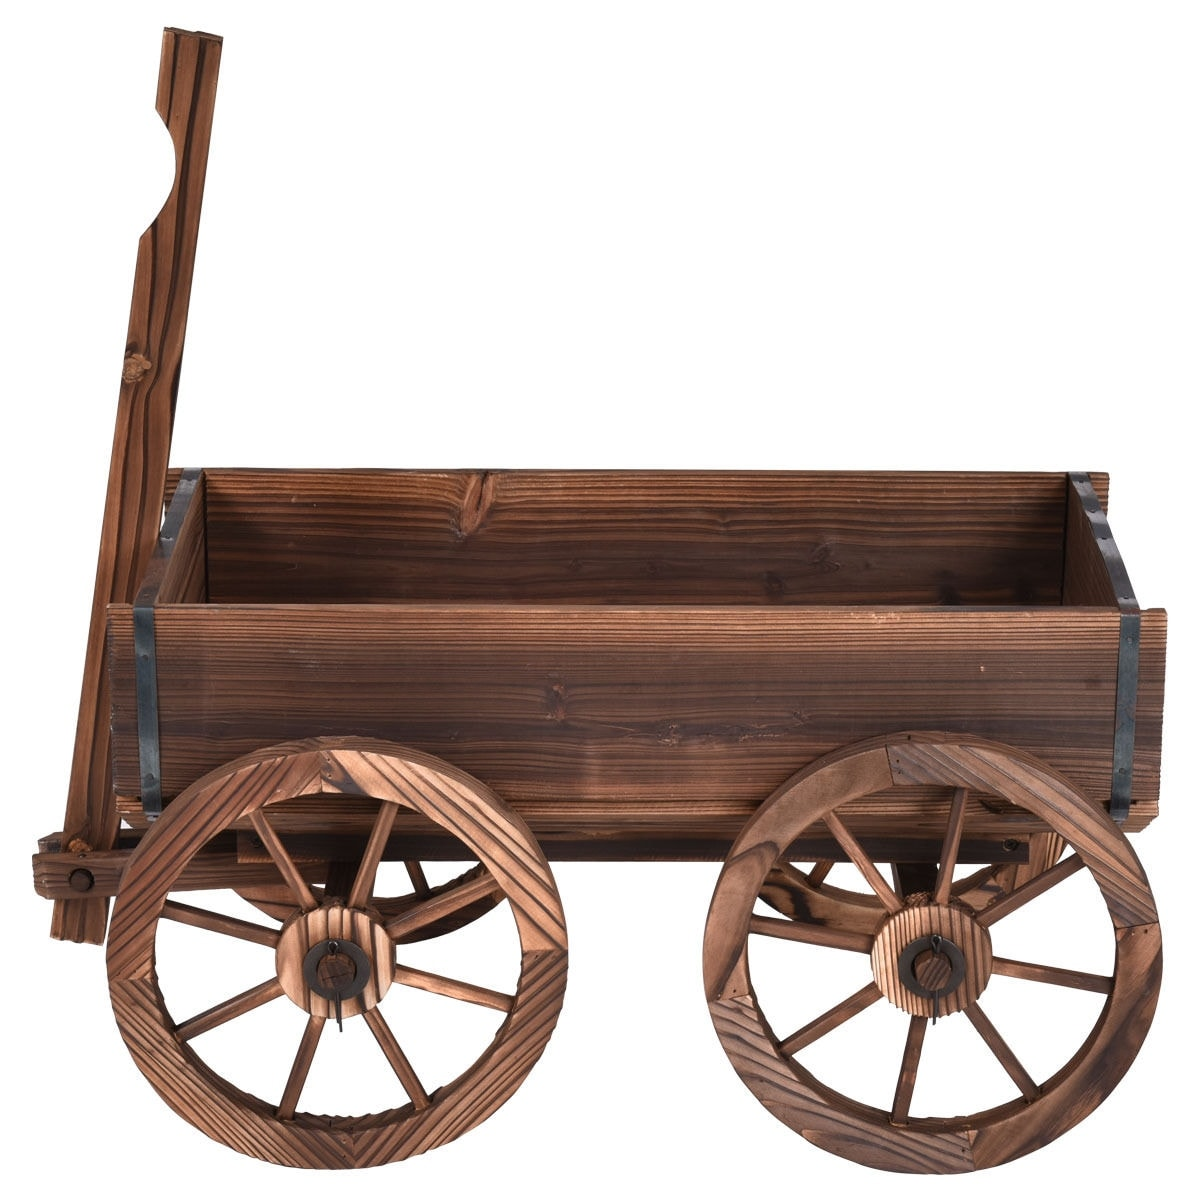 Shop Costway Wood Wagon Flower Planter Pot Stand W/Wheels Home Garden  Outdoor Decor   Free Shipping Today   Overstock.com   15982867